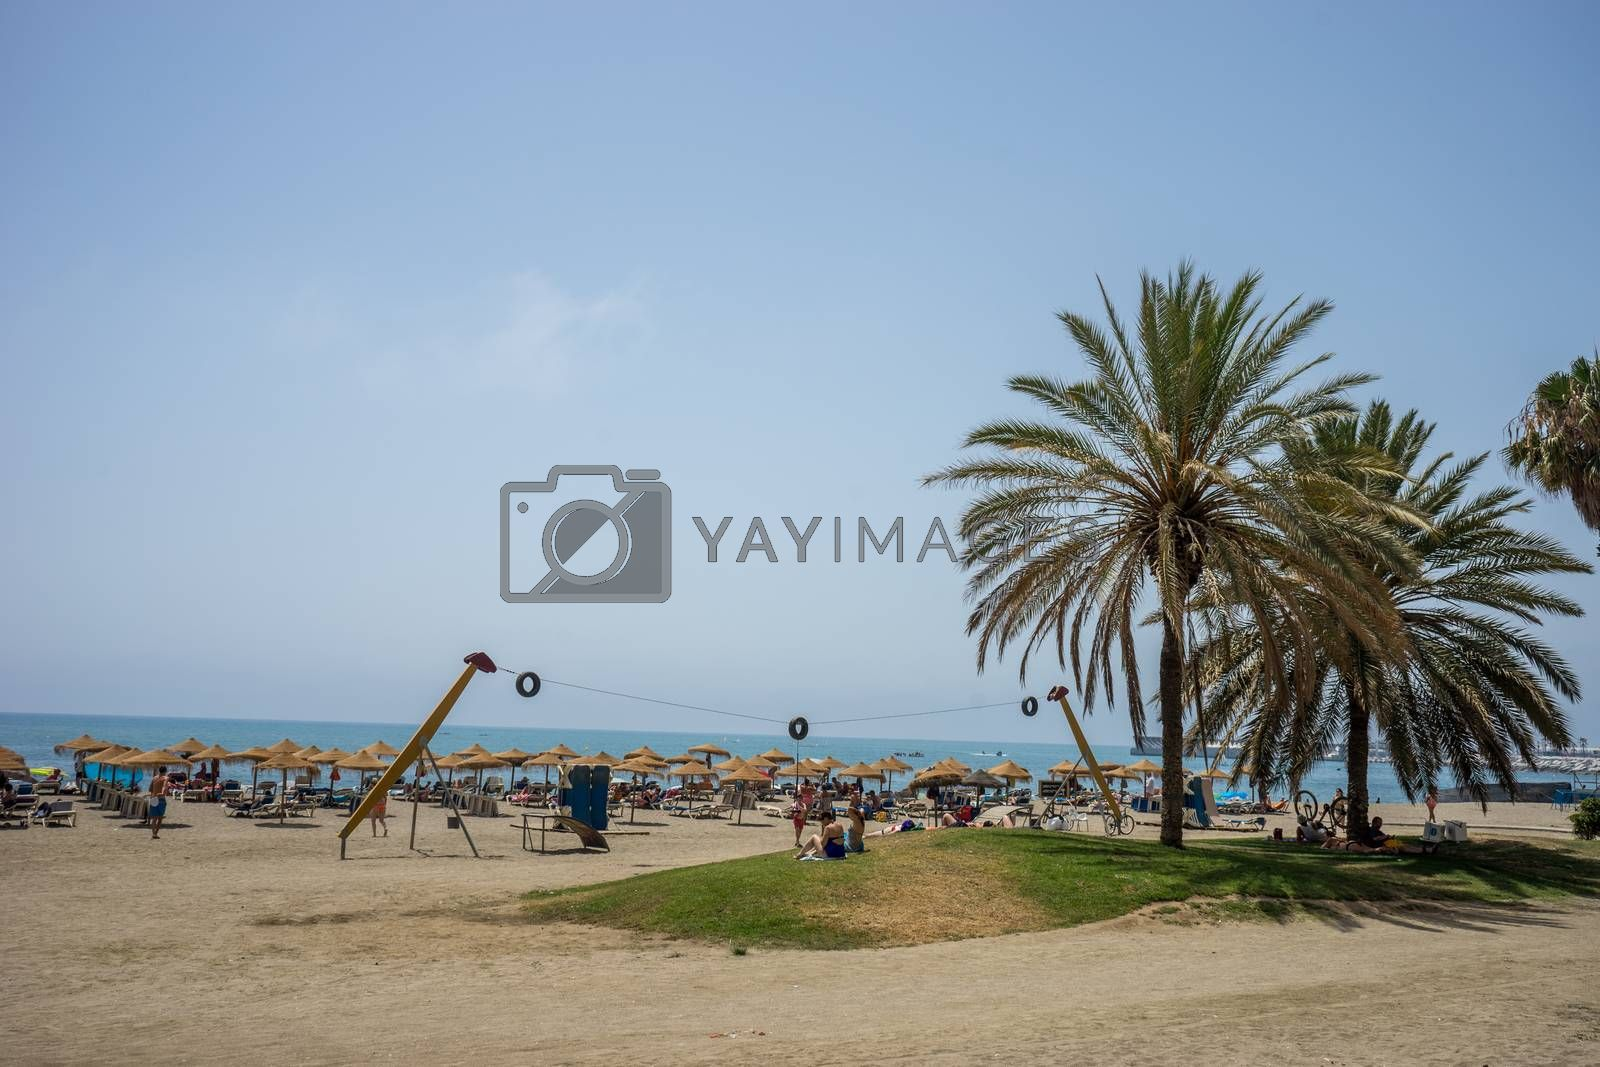 tall twin palm trees along the Malagueta beach with volleyball court in the background in Malaga, Spain, Europe on a summer day with clear skies